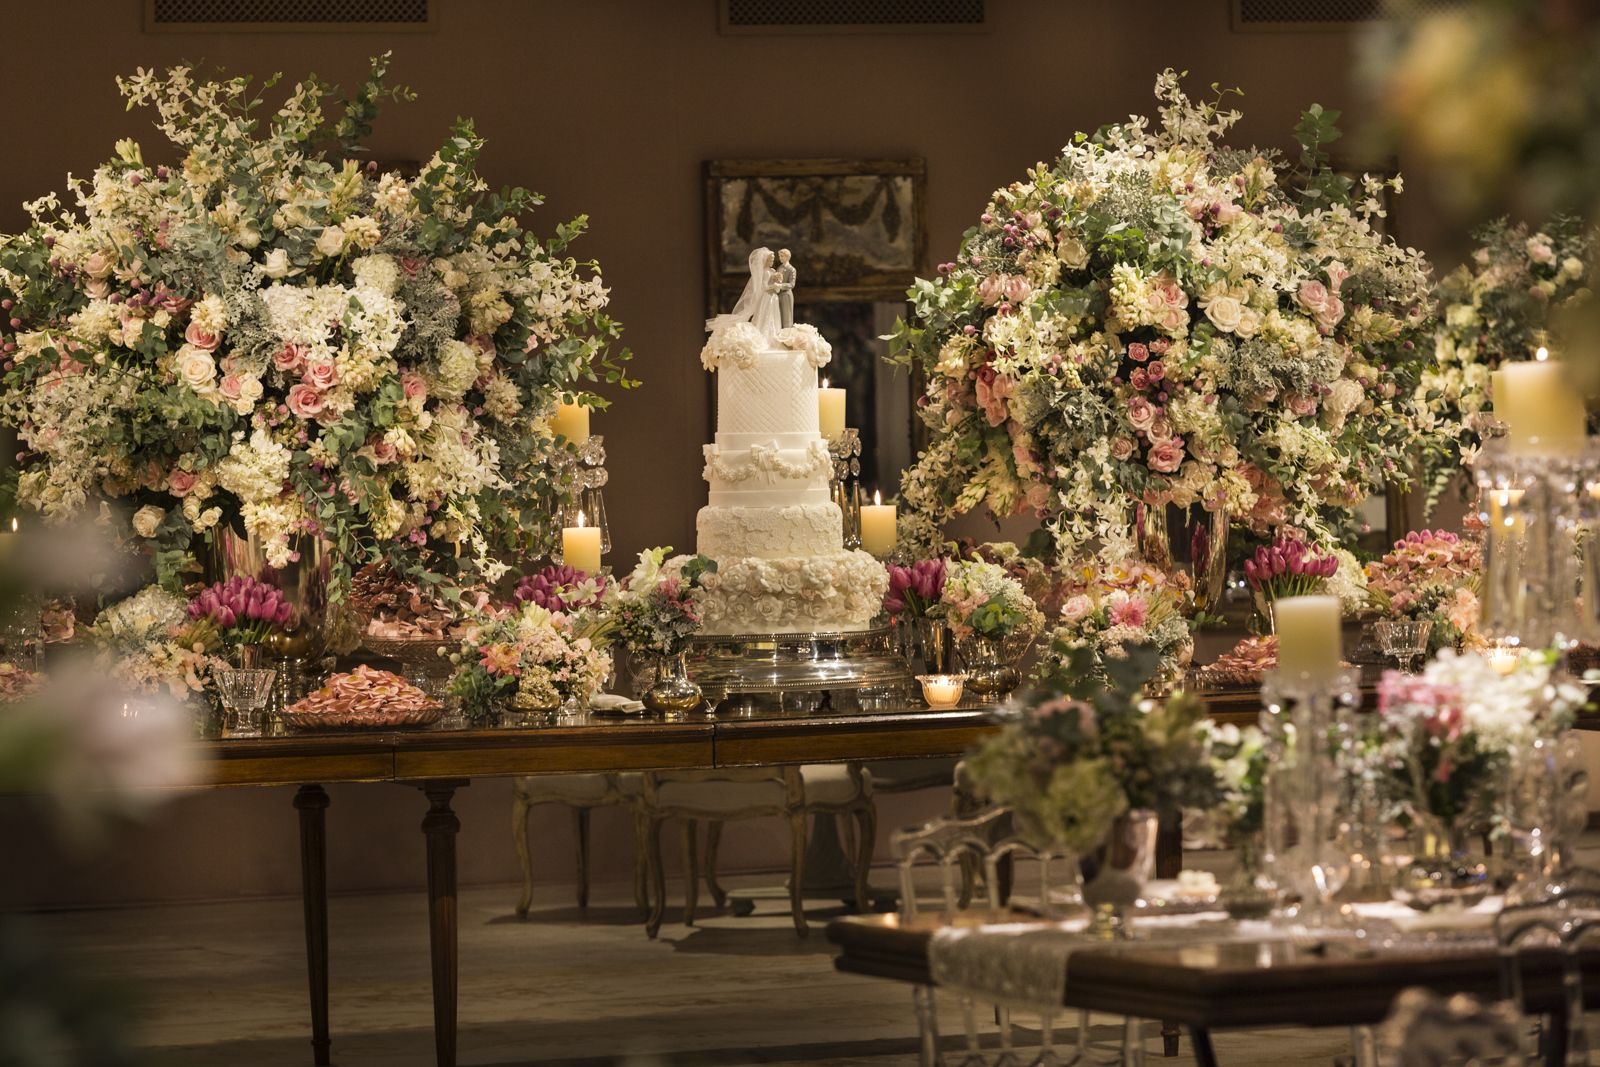 Beautiful romantic wedding dessert table